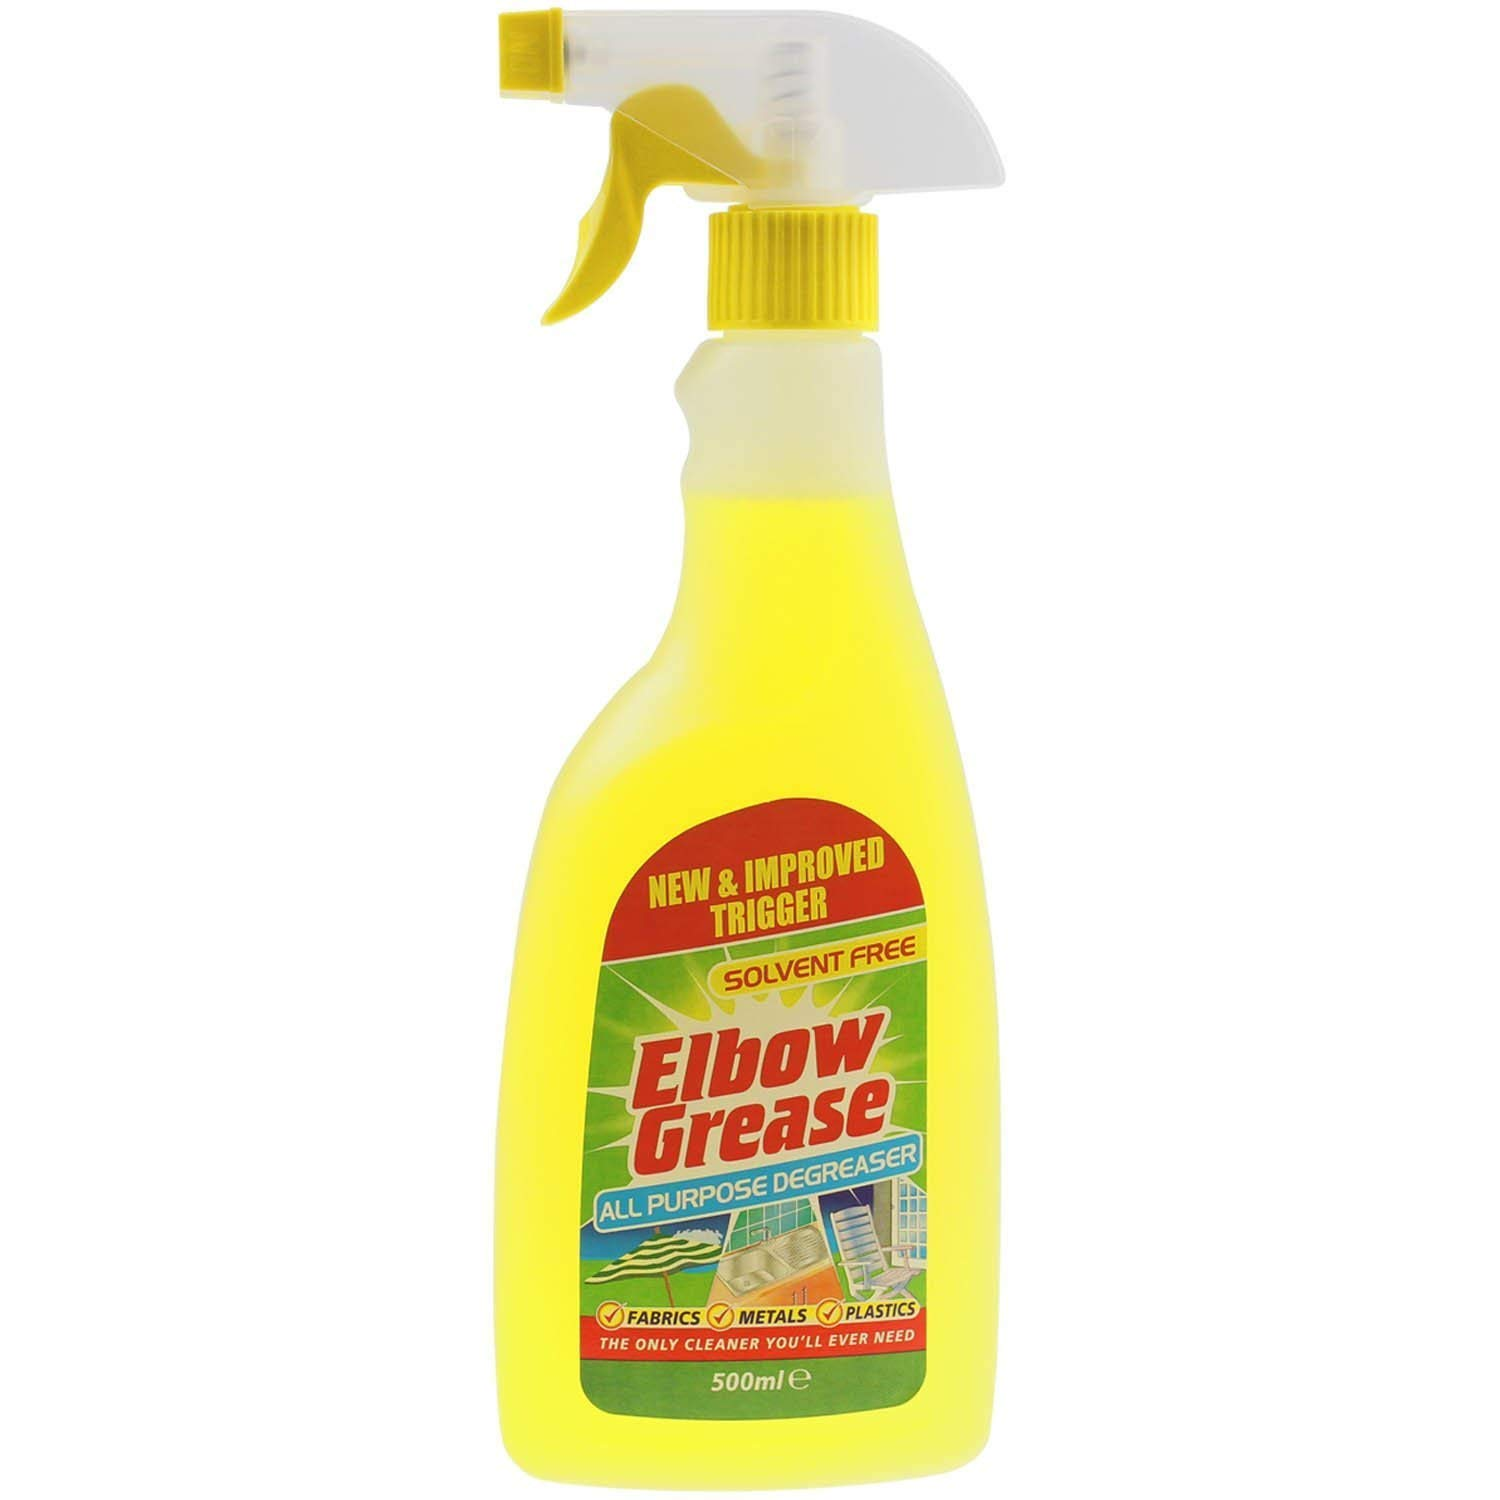 2 X Elbow Greese 500ml All Purpose De-Greaser